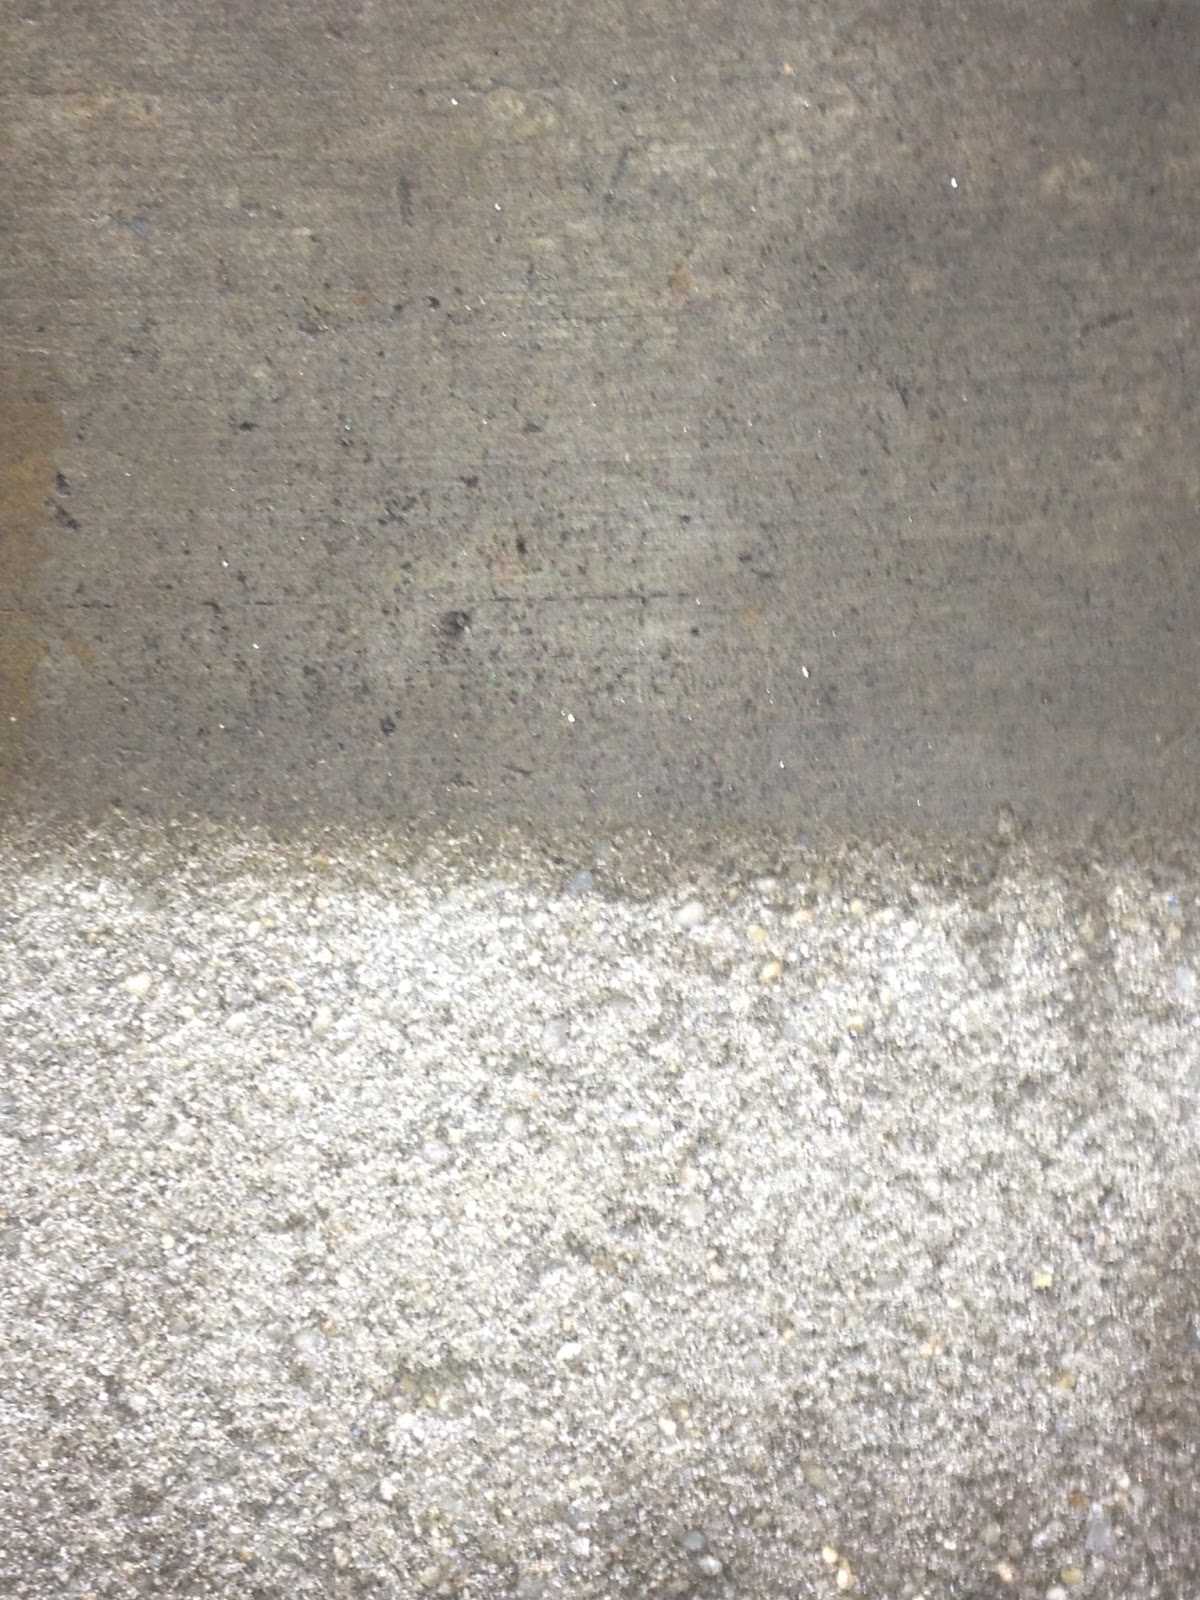 how to fix a slippery concrete floor